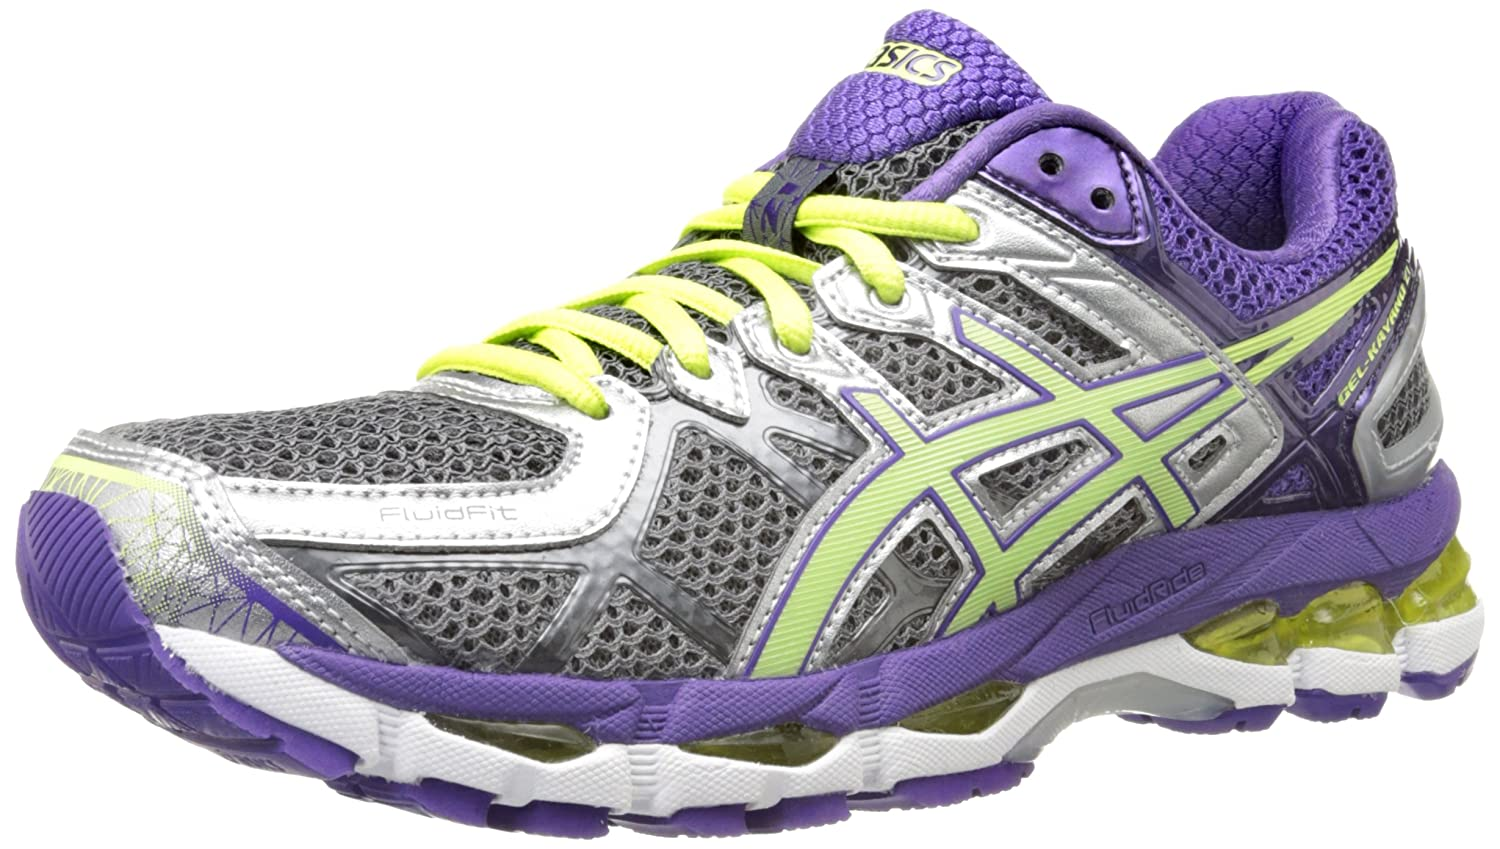 asics shoes for severe overpronation surgery squad unha 651220